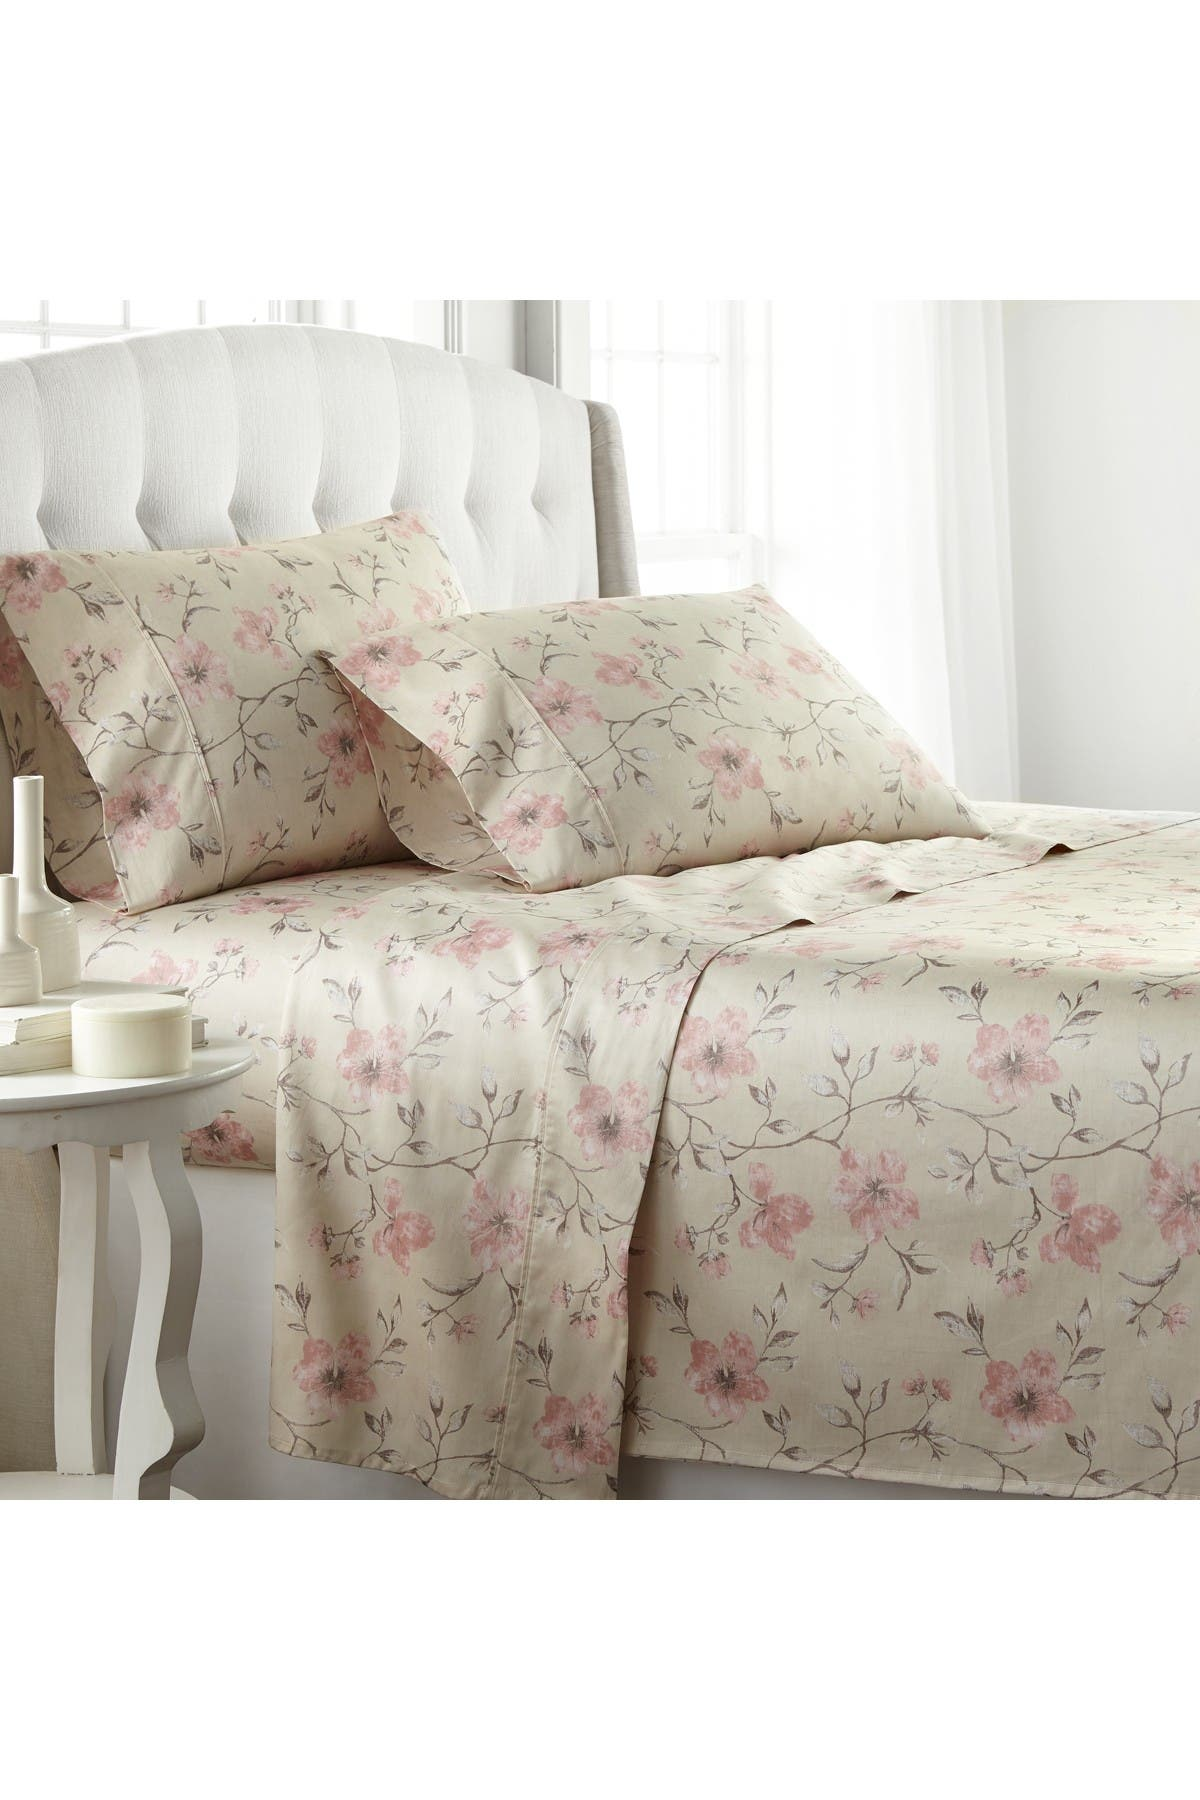 Image of SOUTHSHORE FINE LINENS Queen Extra Deep Pocket 300 Thread-Count Cotton Sheet Sets - Floral Soft Sand